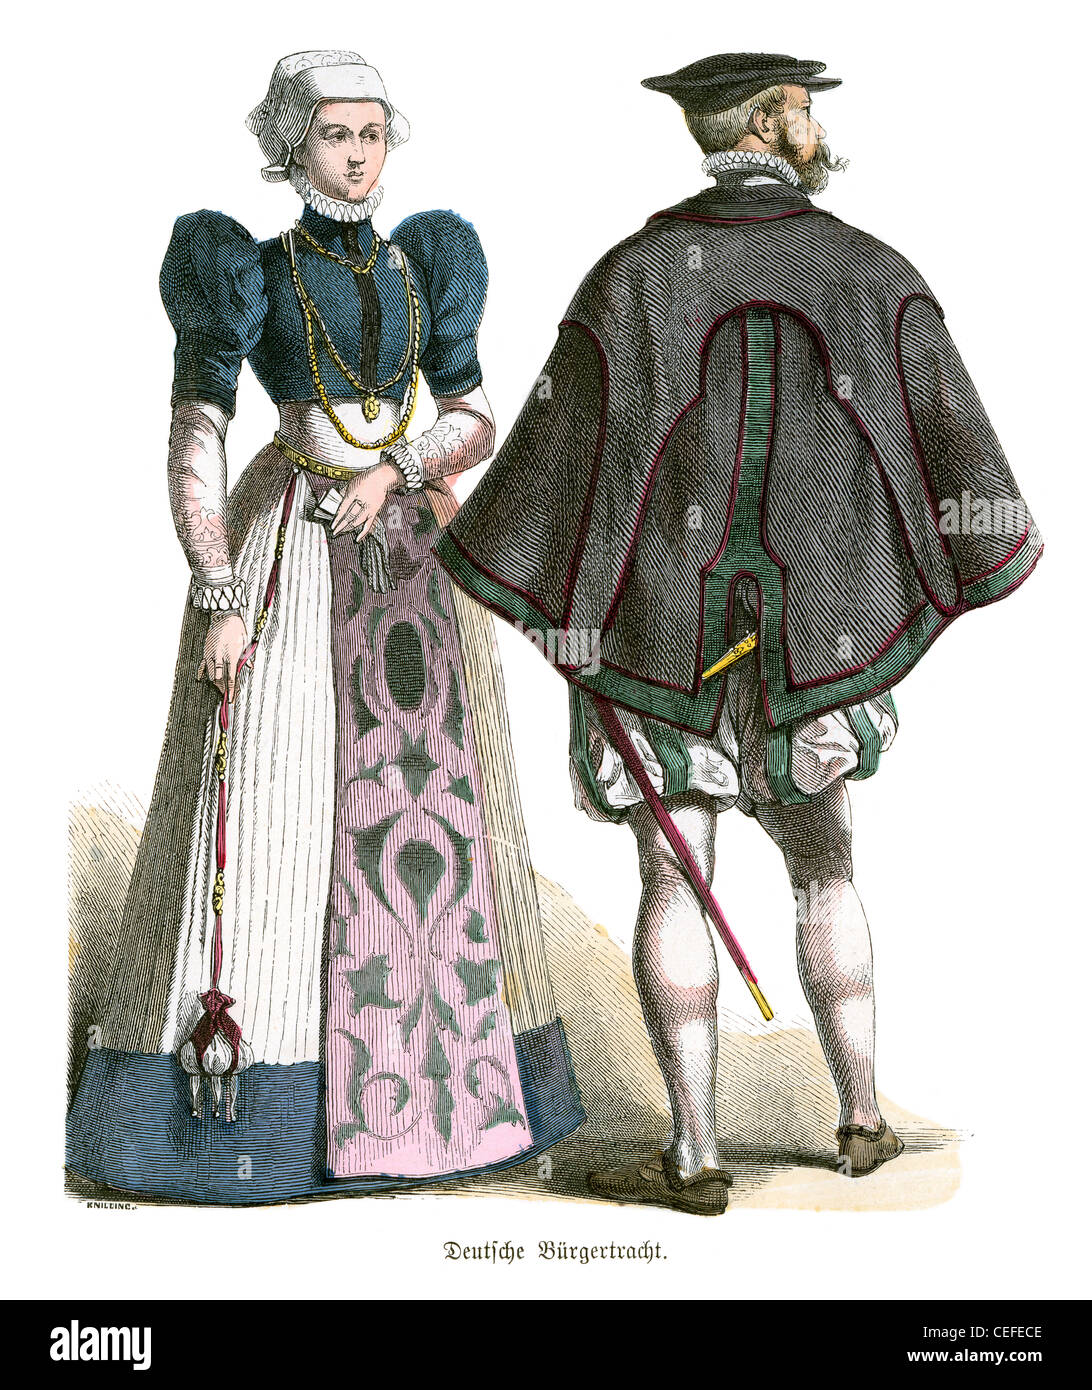 A couple in German Burger (Burgomaster) costume of the 16th century - Stock Image